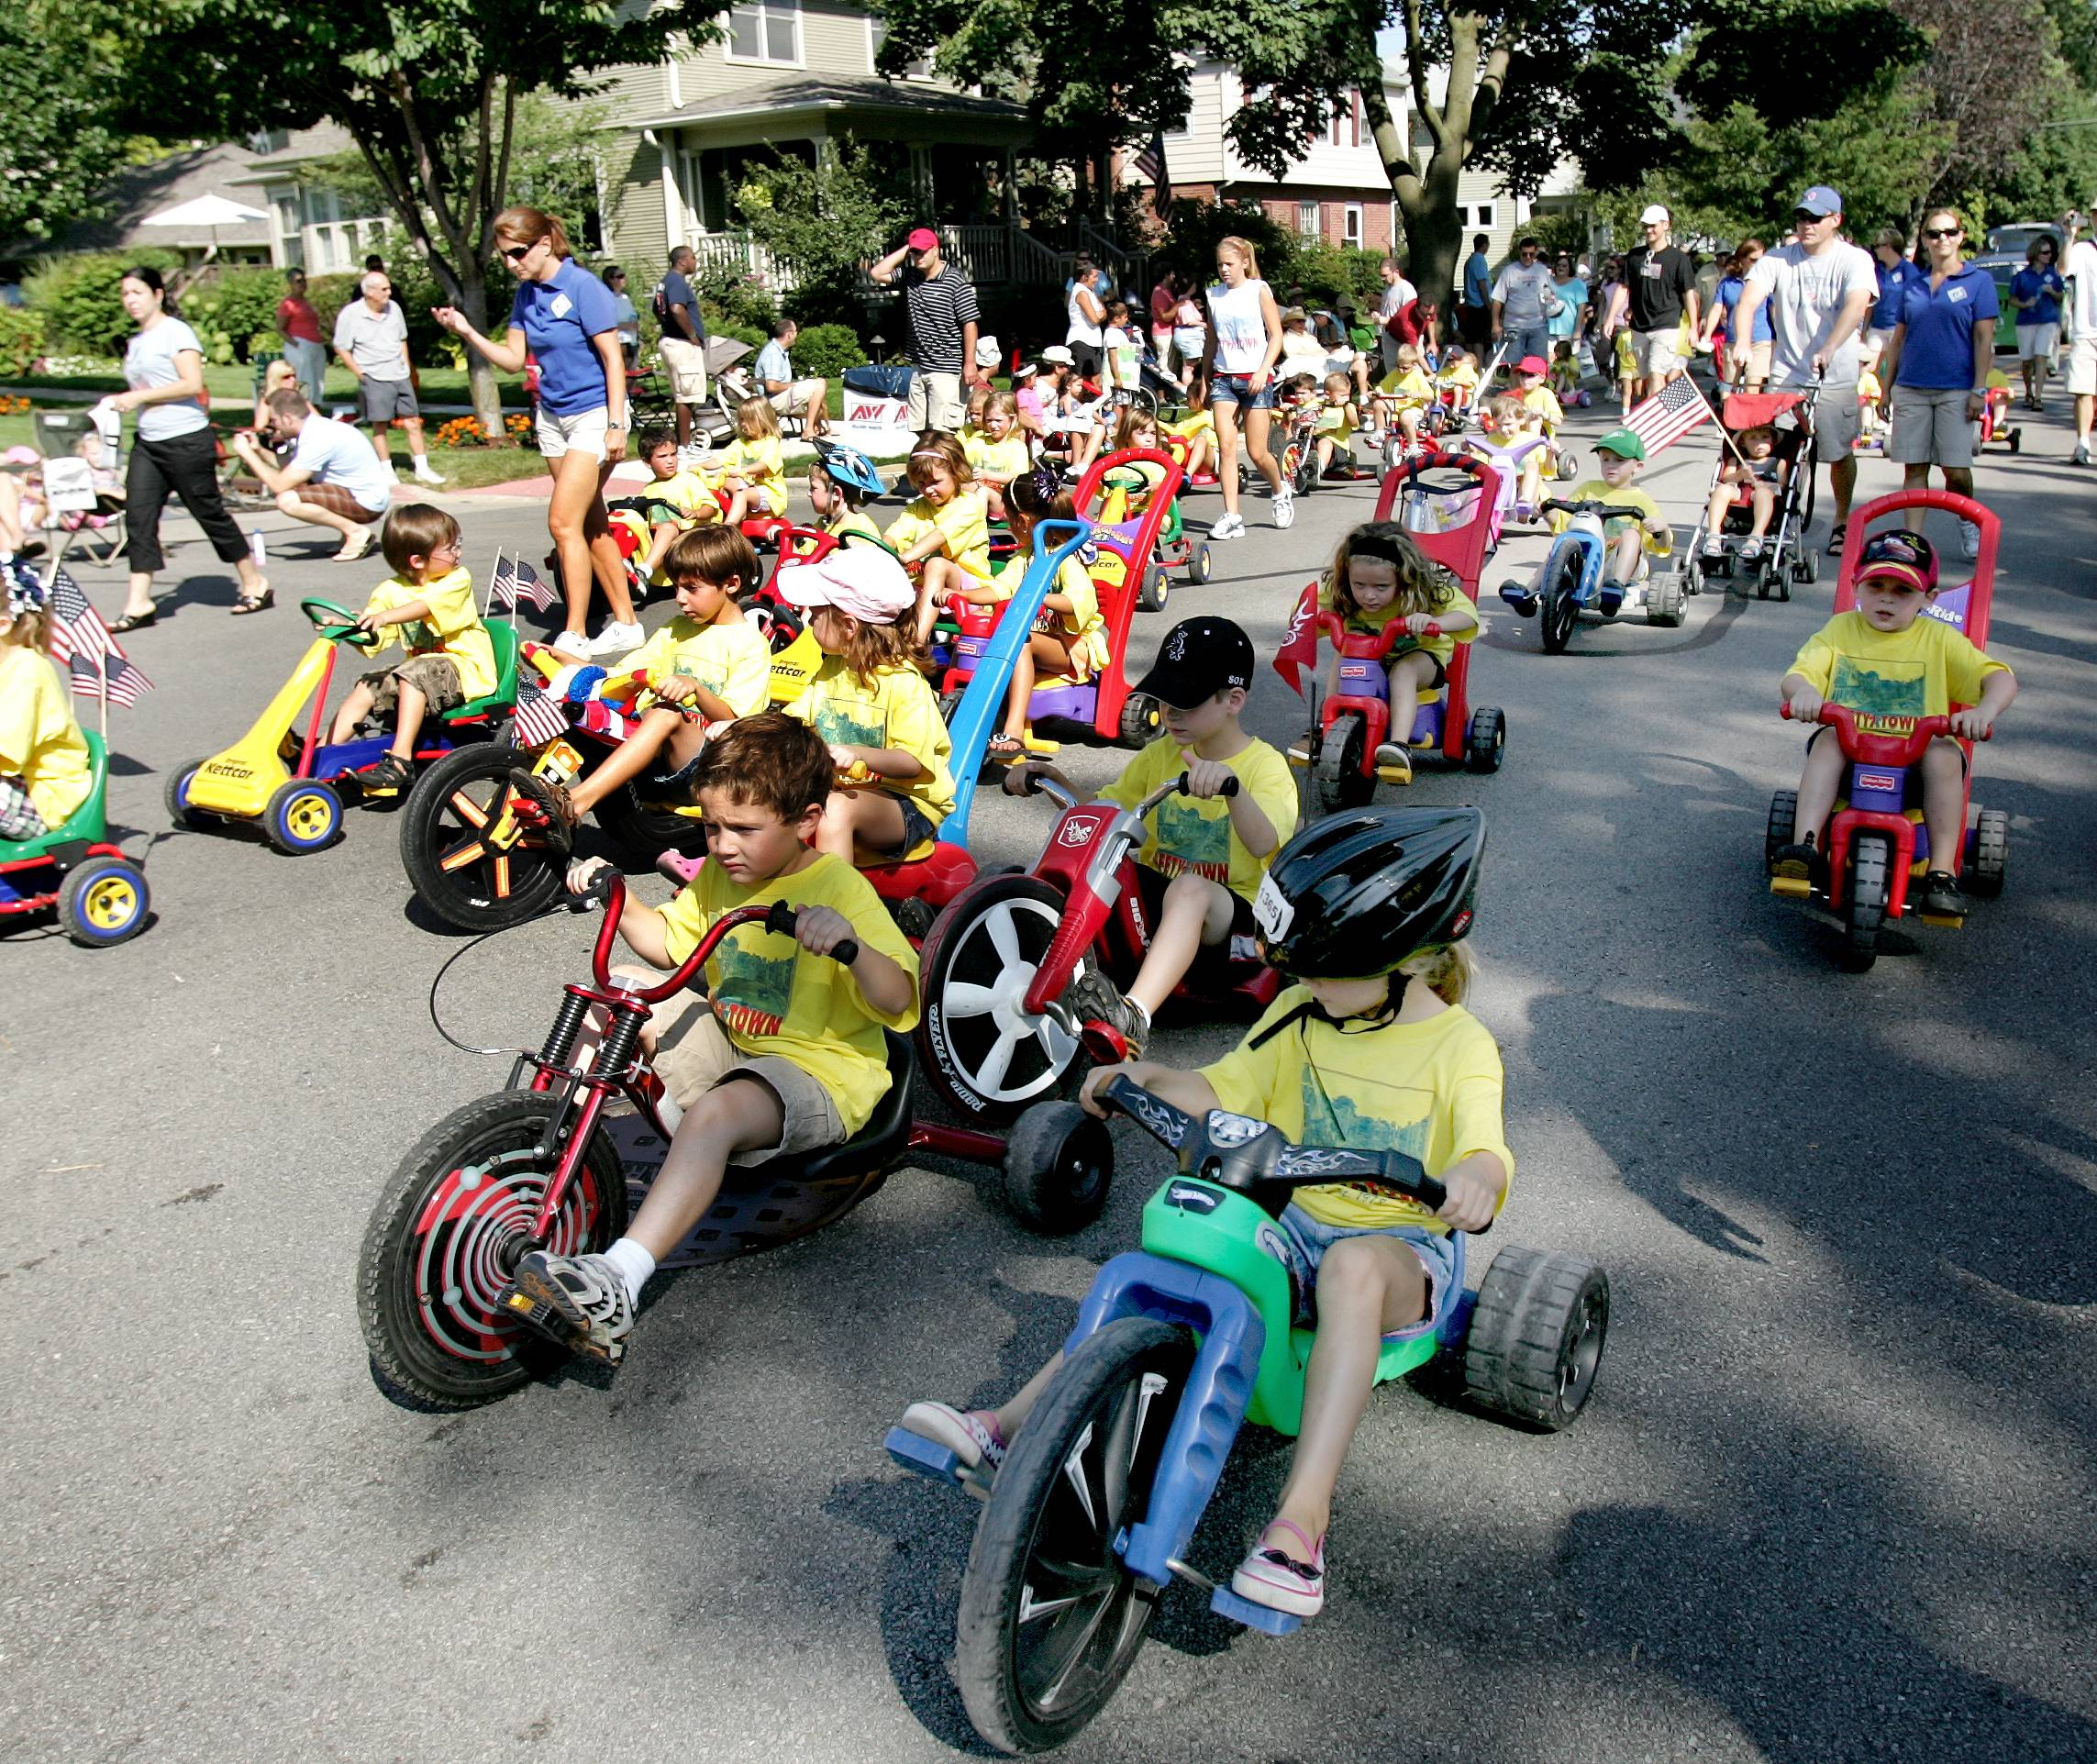 The Labor Day Parade on Monday morning during the Last Fling festival in Naperville will feature nearly 100 units, and kids on big wheels are common participants.